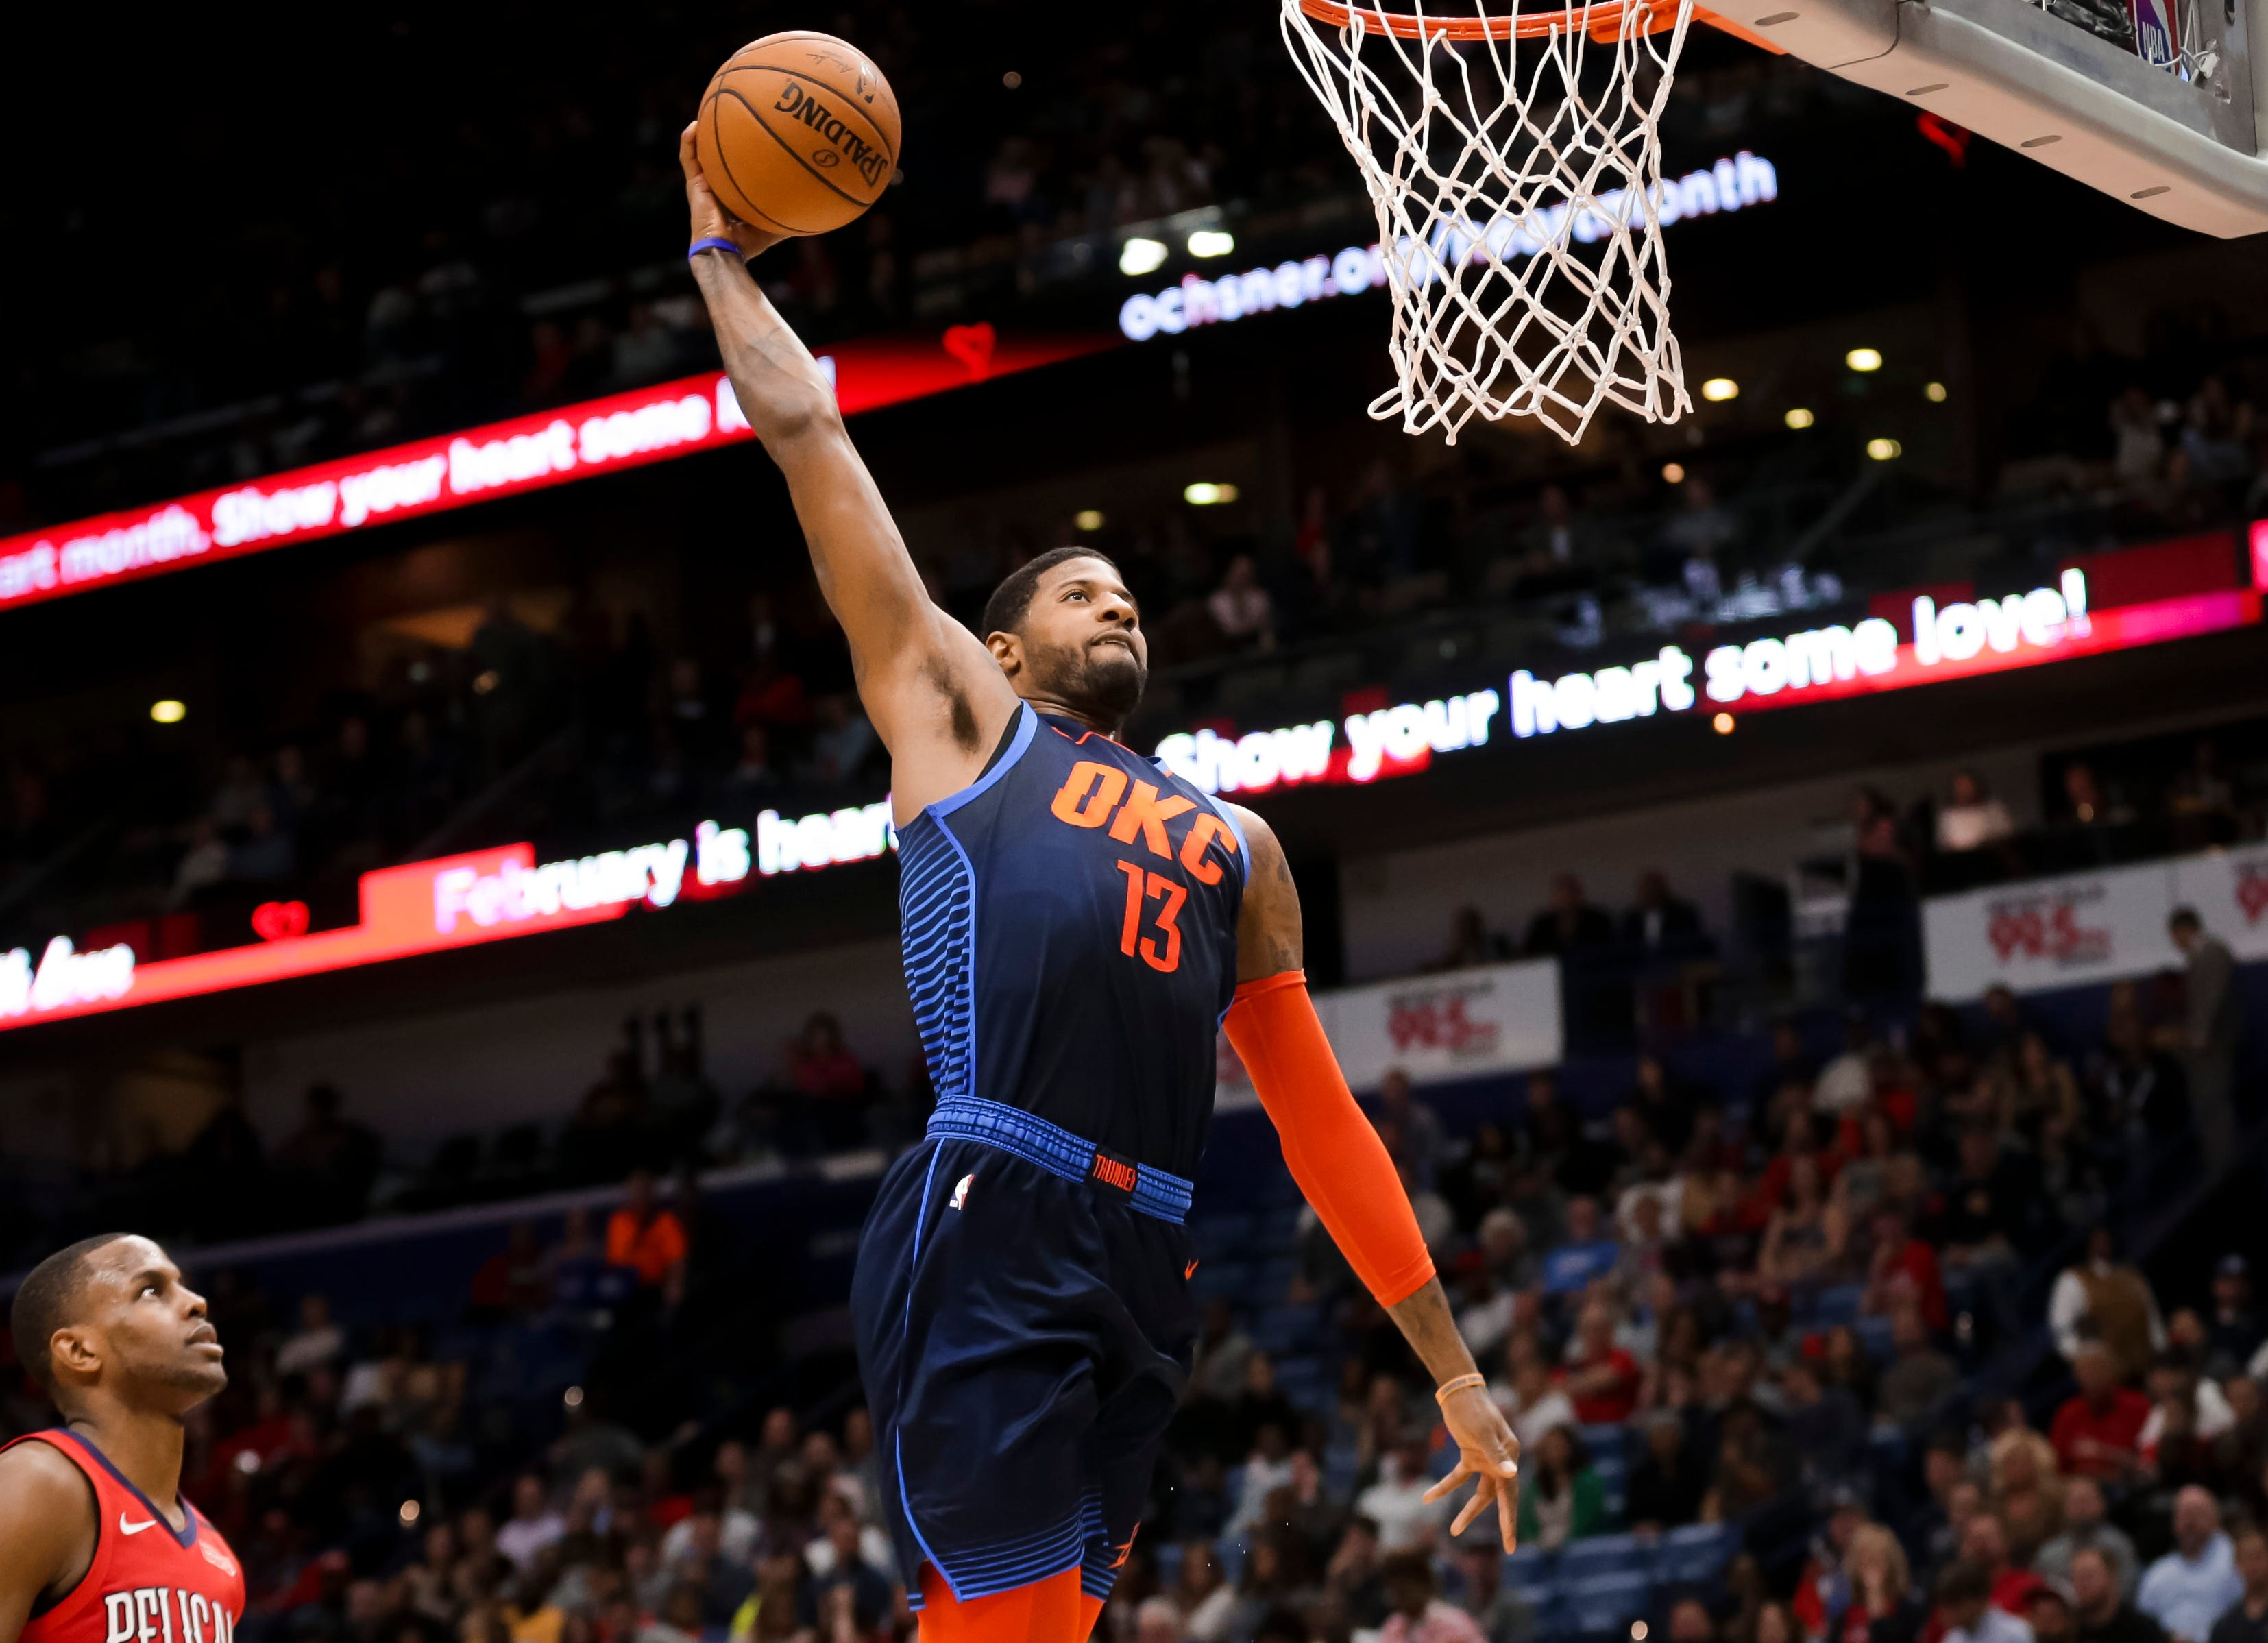 Feb. 14: Thunder forward Paul George rises up for the one-handed flush during the first half against the Pelicans in New Orleans.